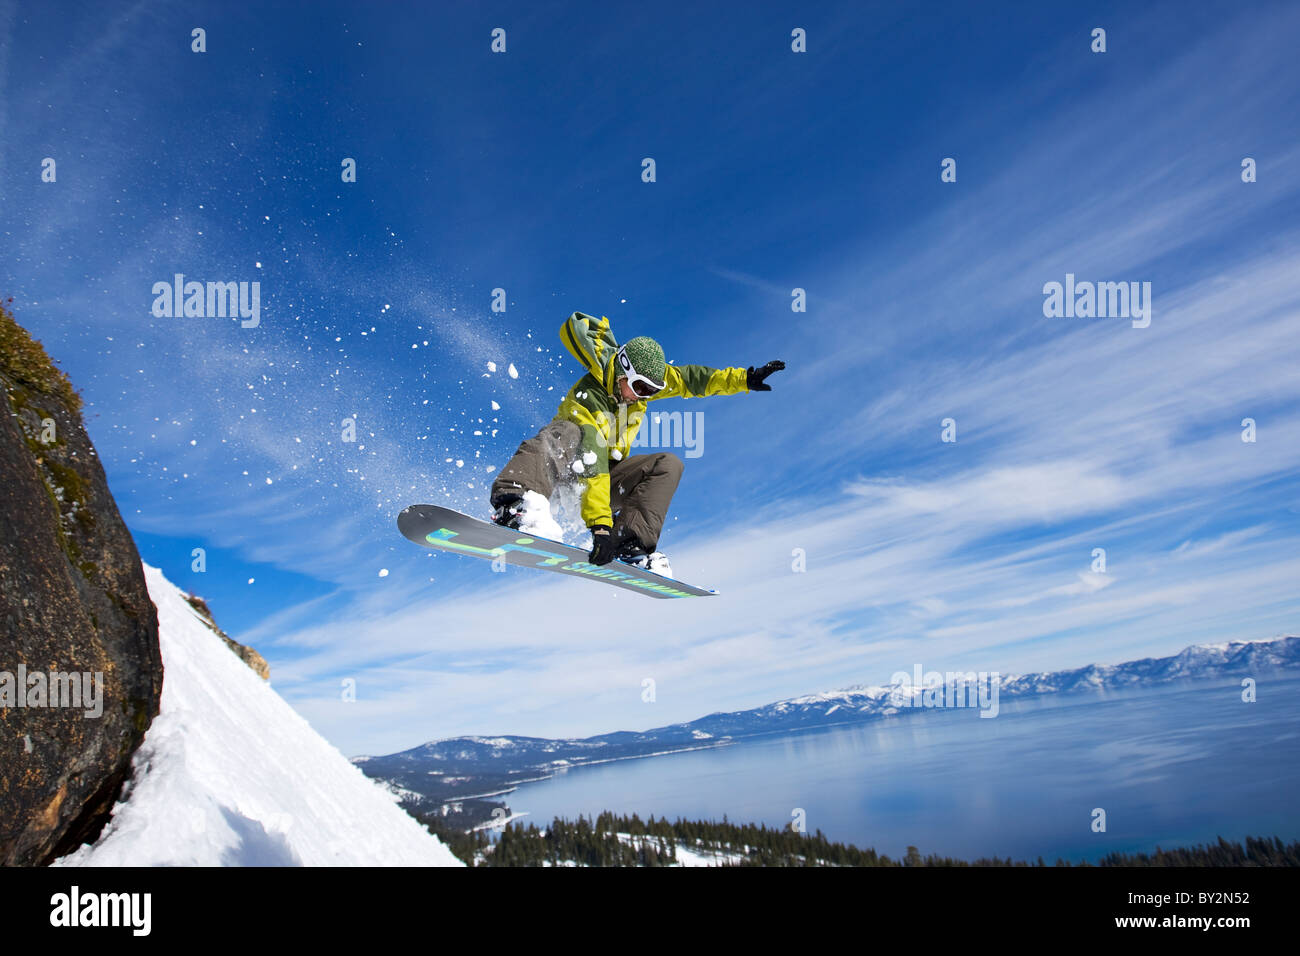 A snowboarder catches air in Lake Tahoe, California. - Stock Image